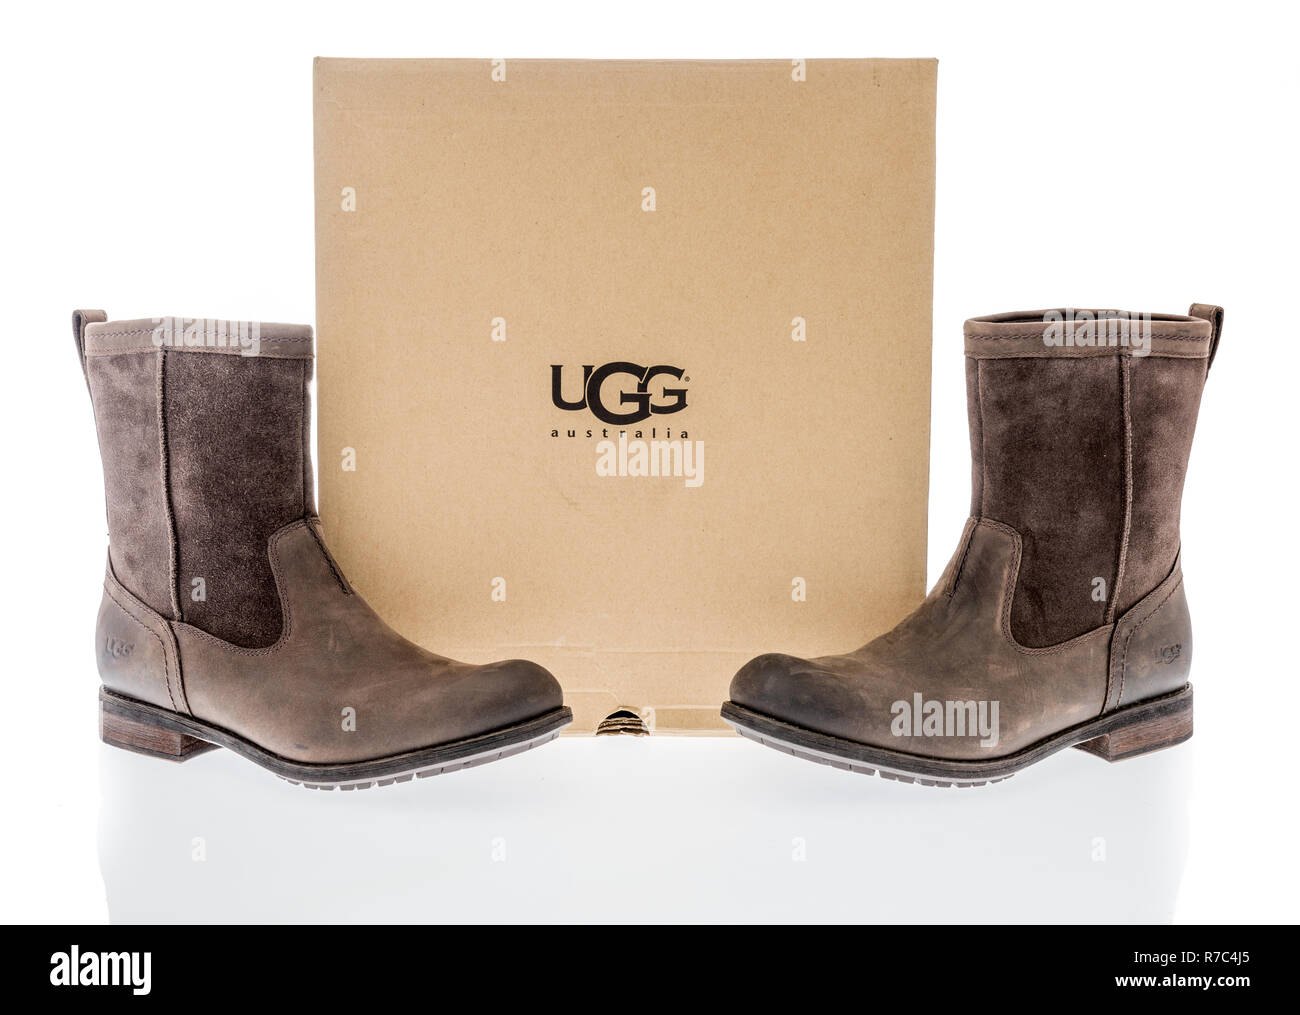 17ff14a4038 Ugg Boots Stock Photos & Ugg Boots Stock Images - Alamy